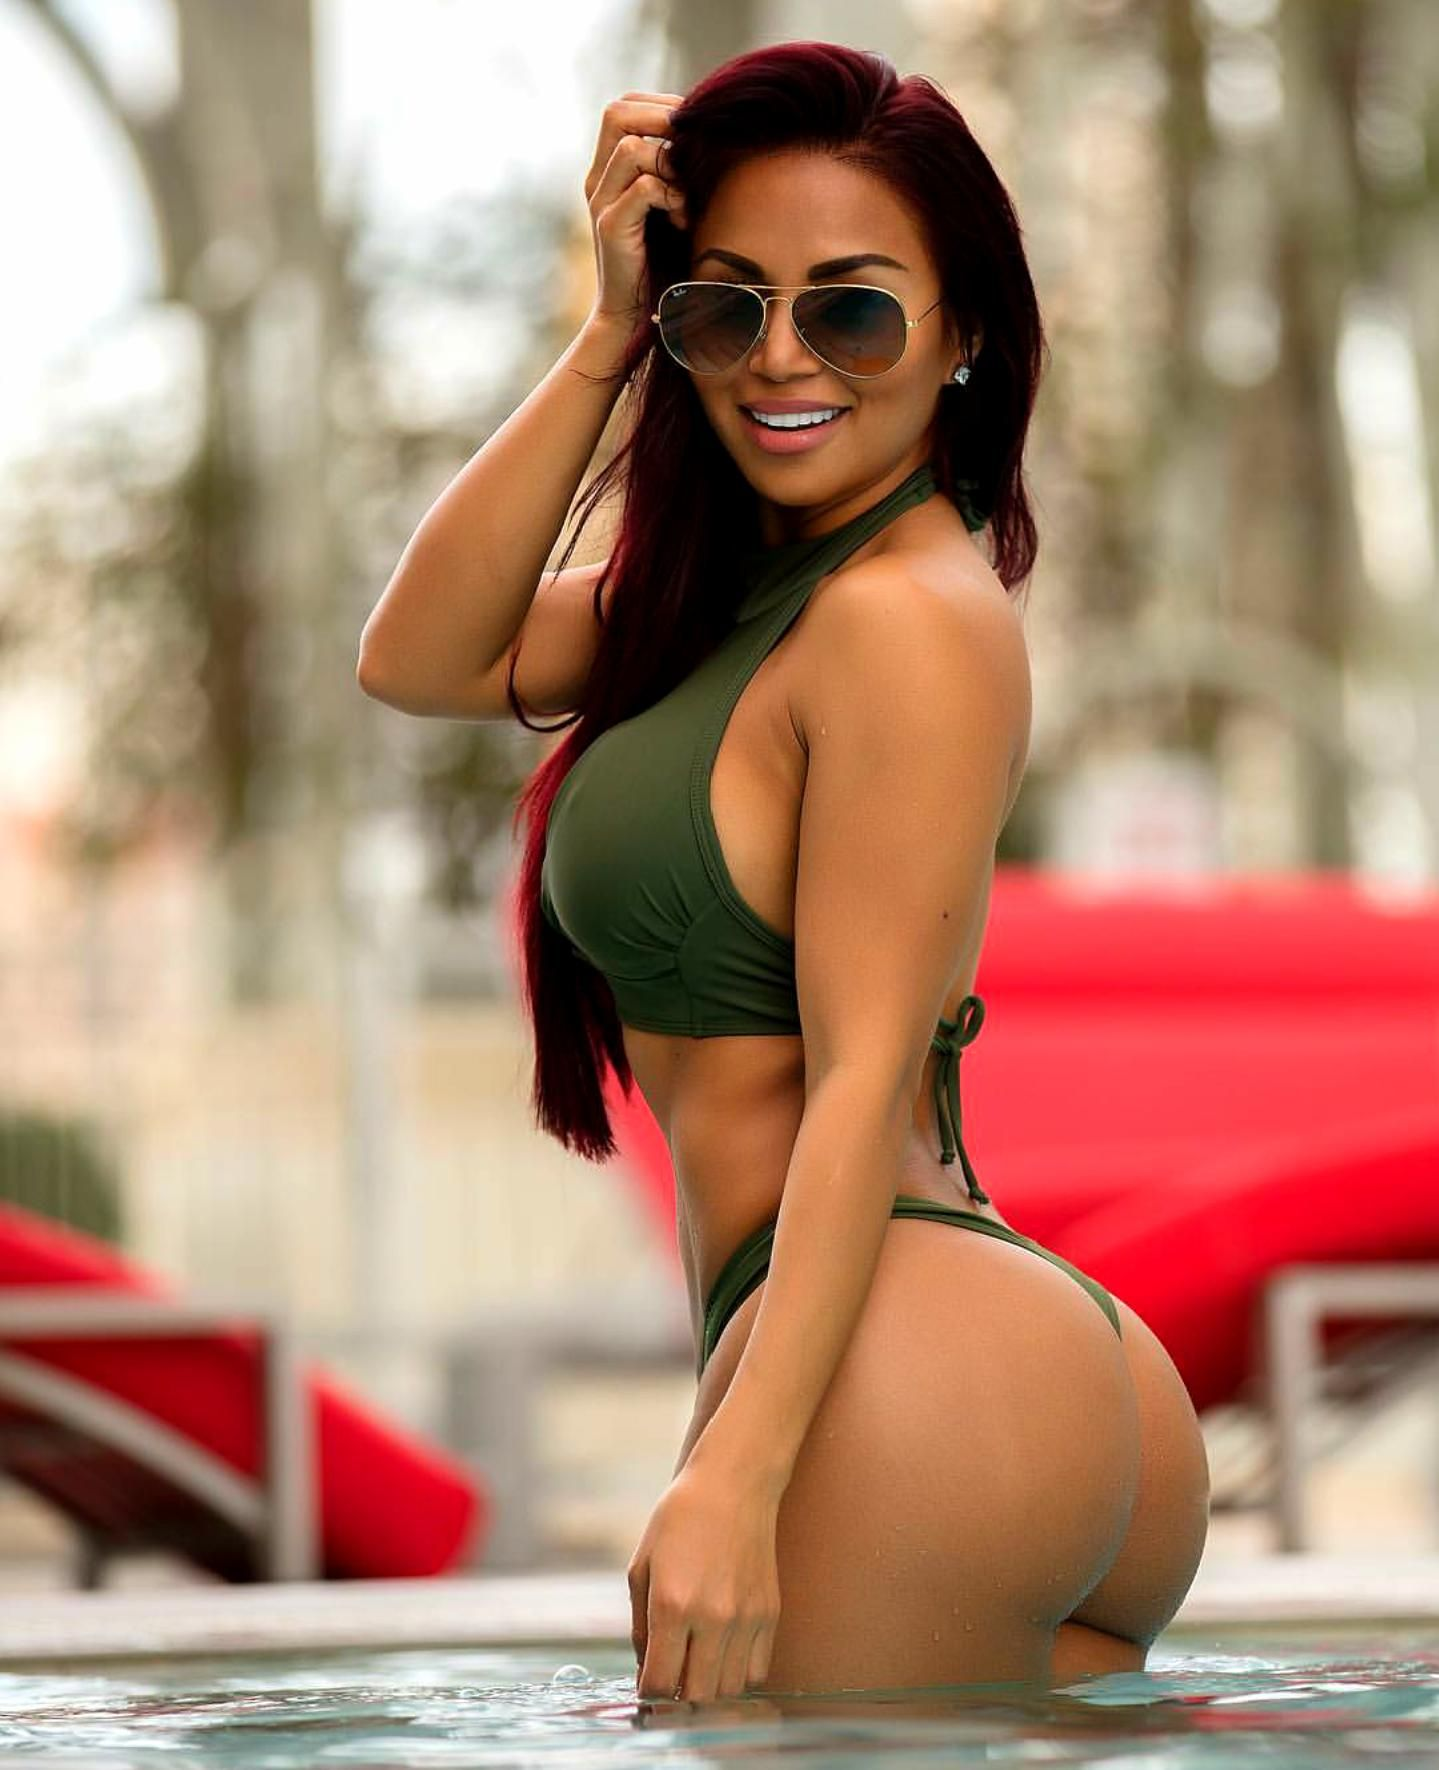 latin bombshells that will blow your pants off | bad ass chicks